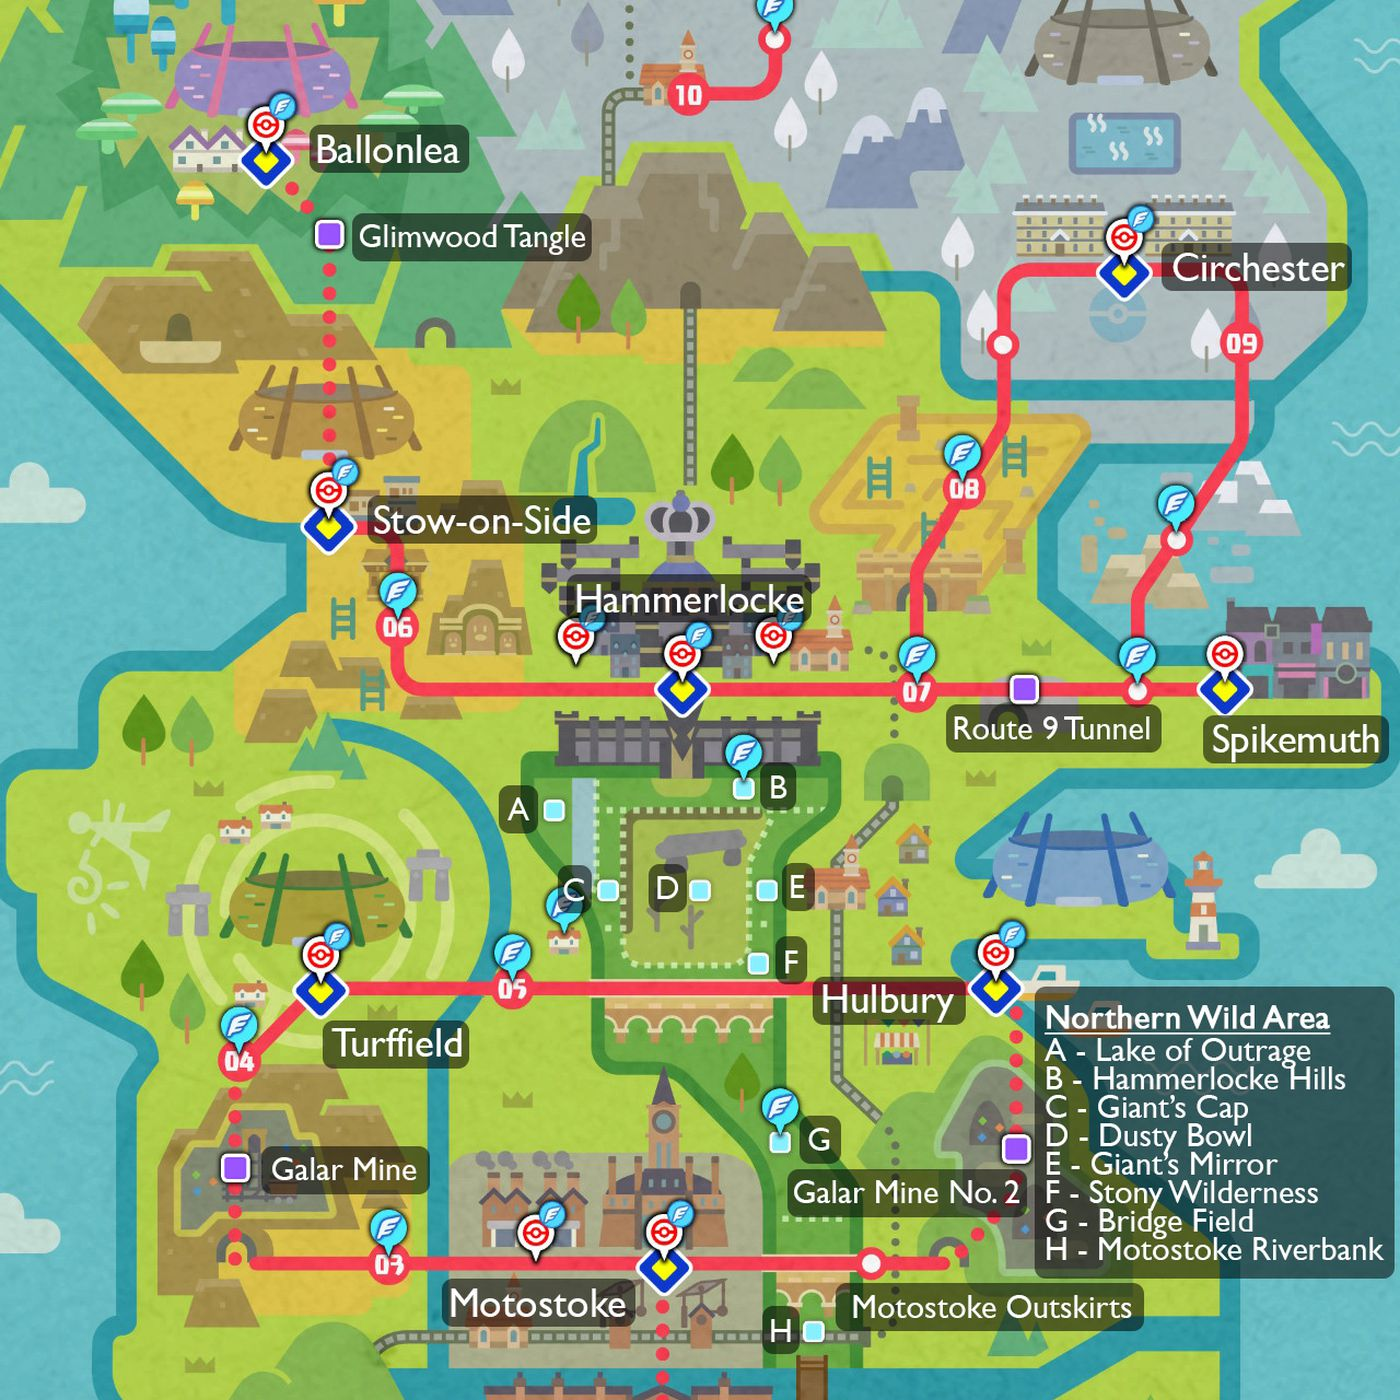 Pokémon Sword and Shield complete map and locations - Polygon on map ob, map di, map browser, map or, map software, water services regulation authority, map oy, map java, map northwest passage, map apps, map graphics, map oslo, map ne, map co, map db, map de, map data, map projection, map al, map storage, map interface,